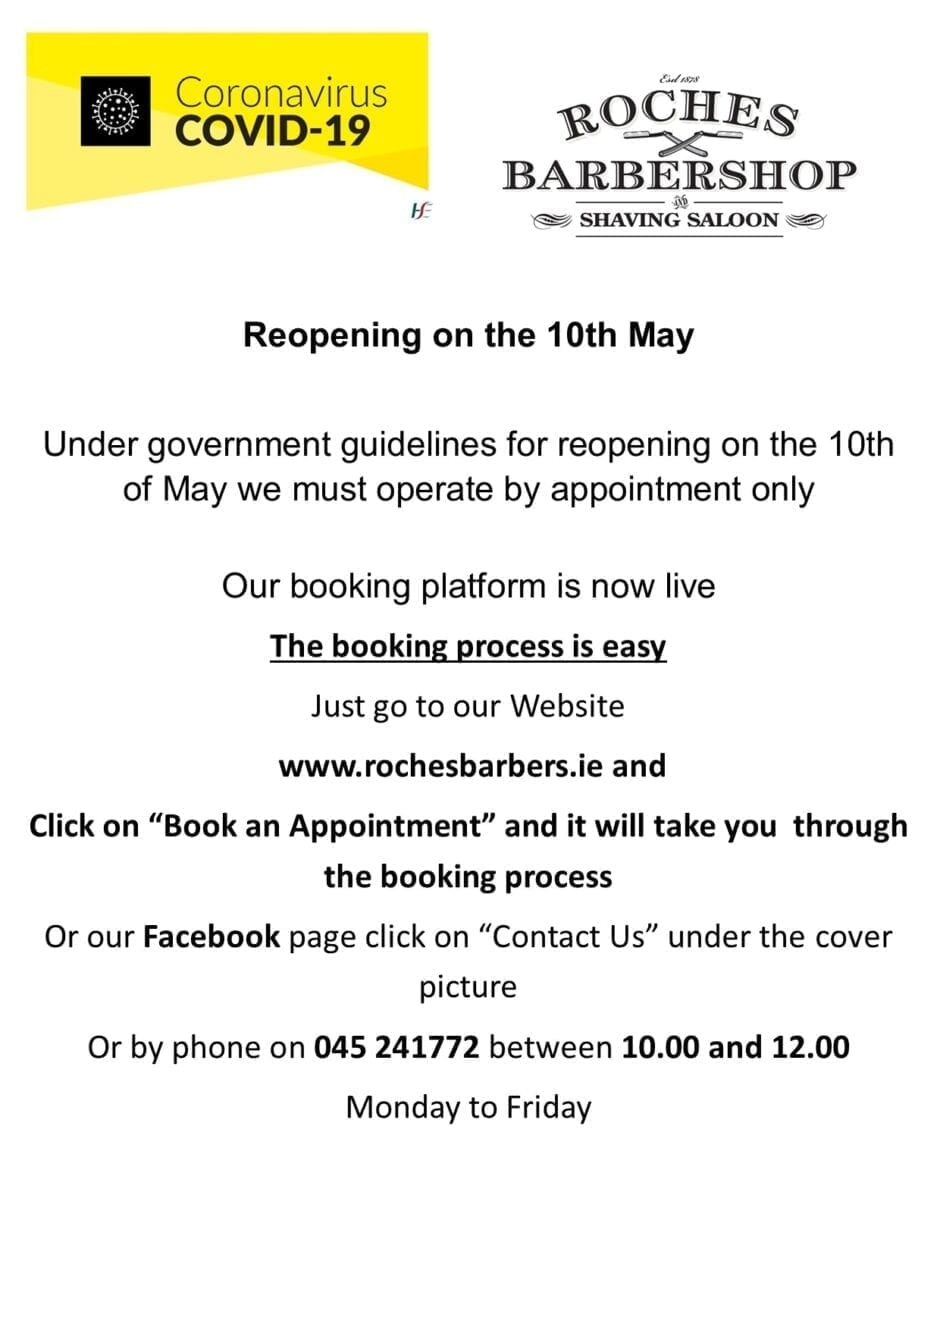 notice for reopening